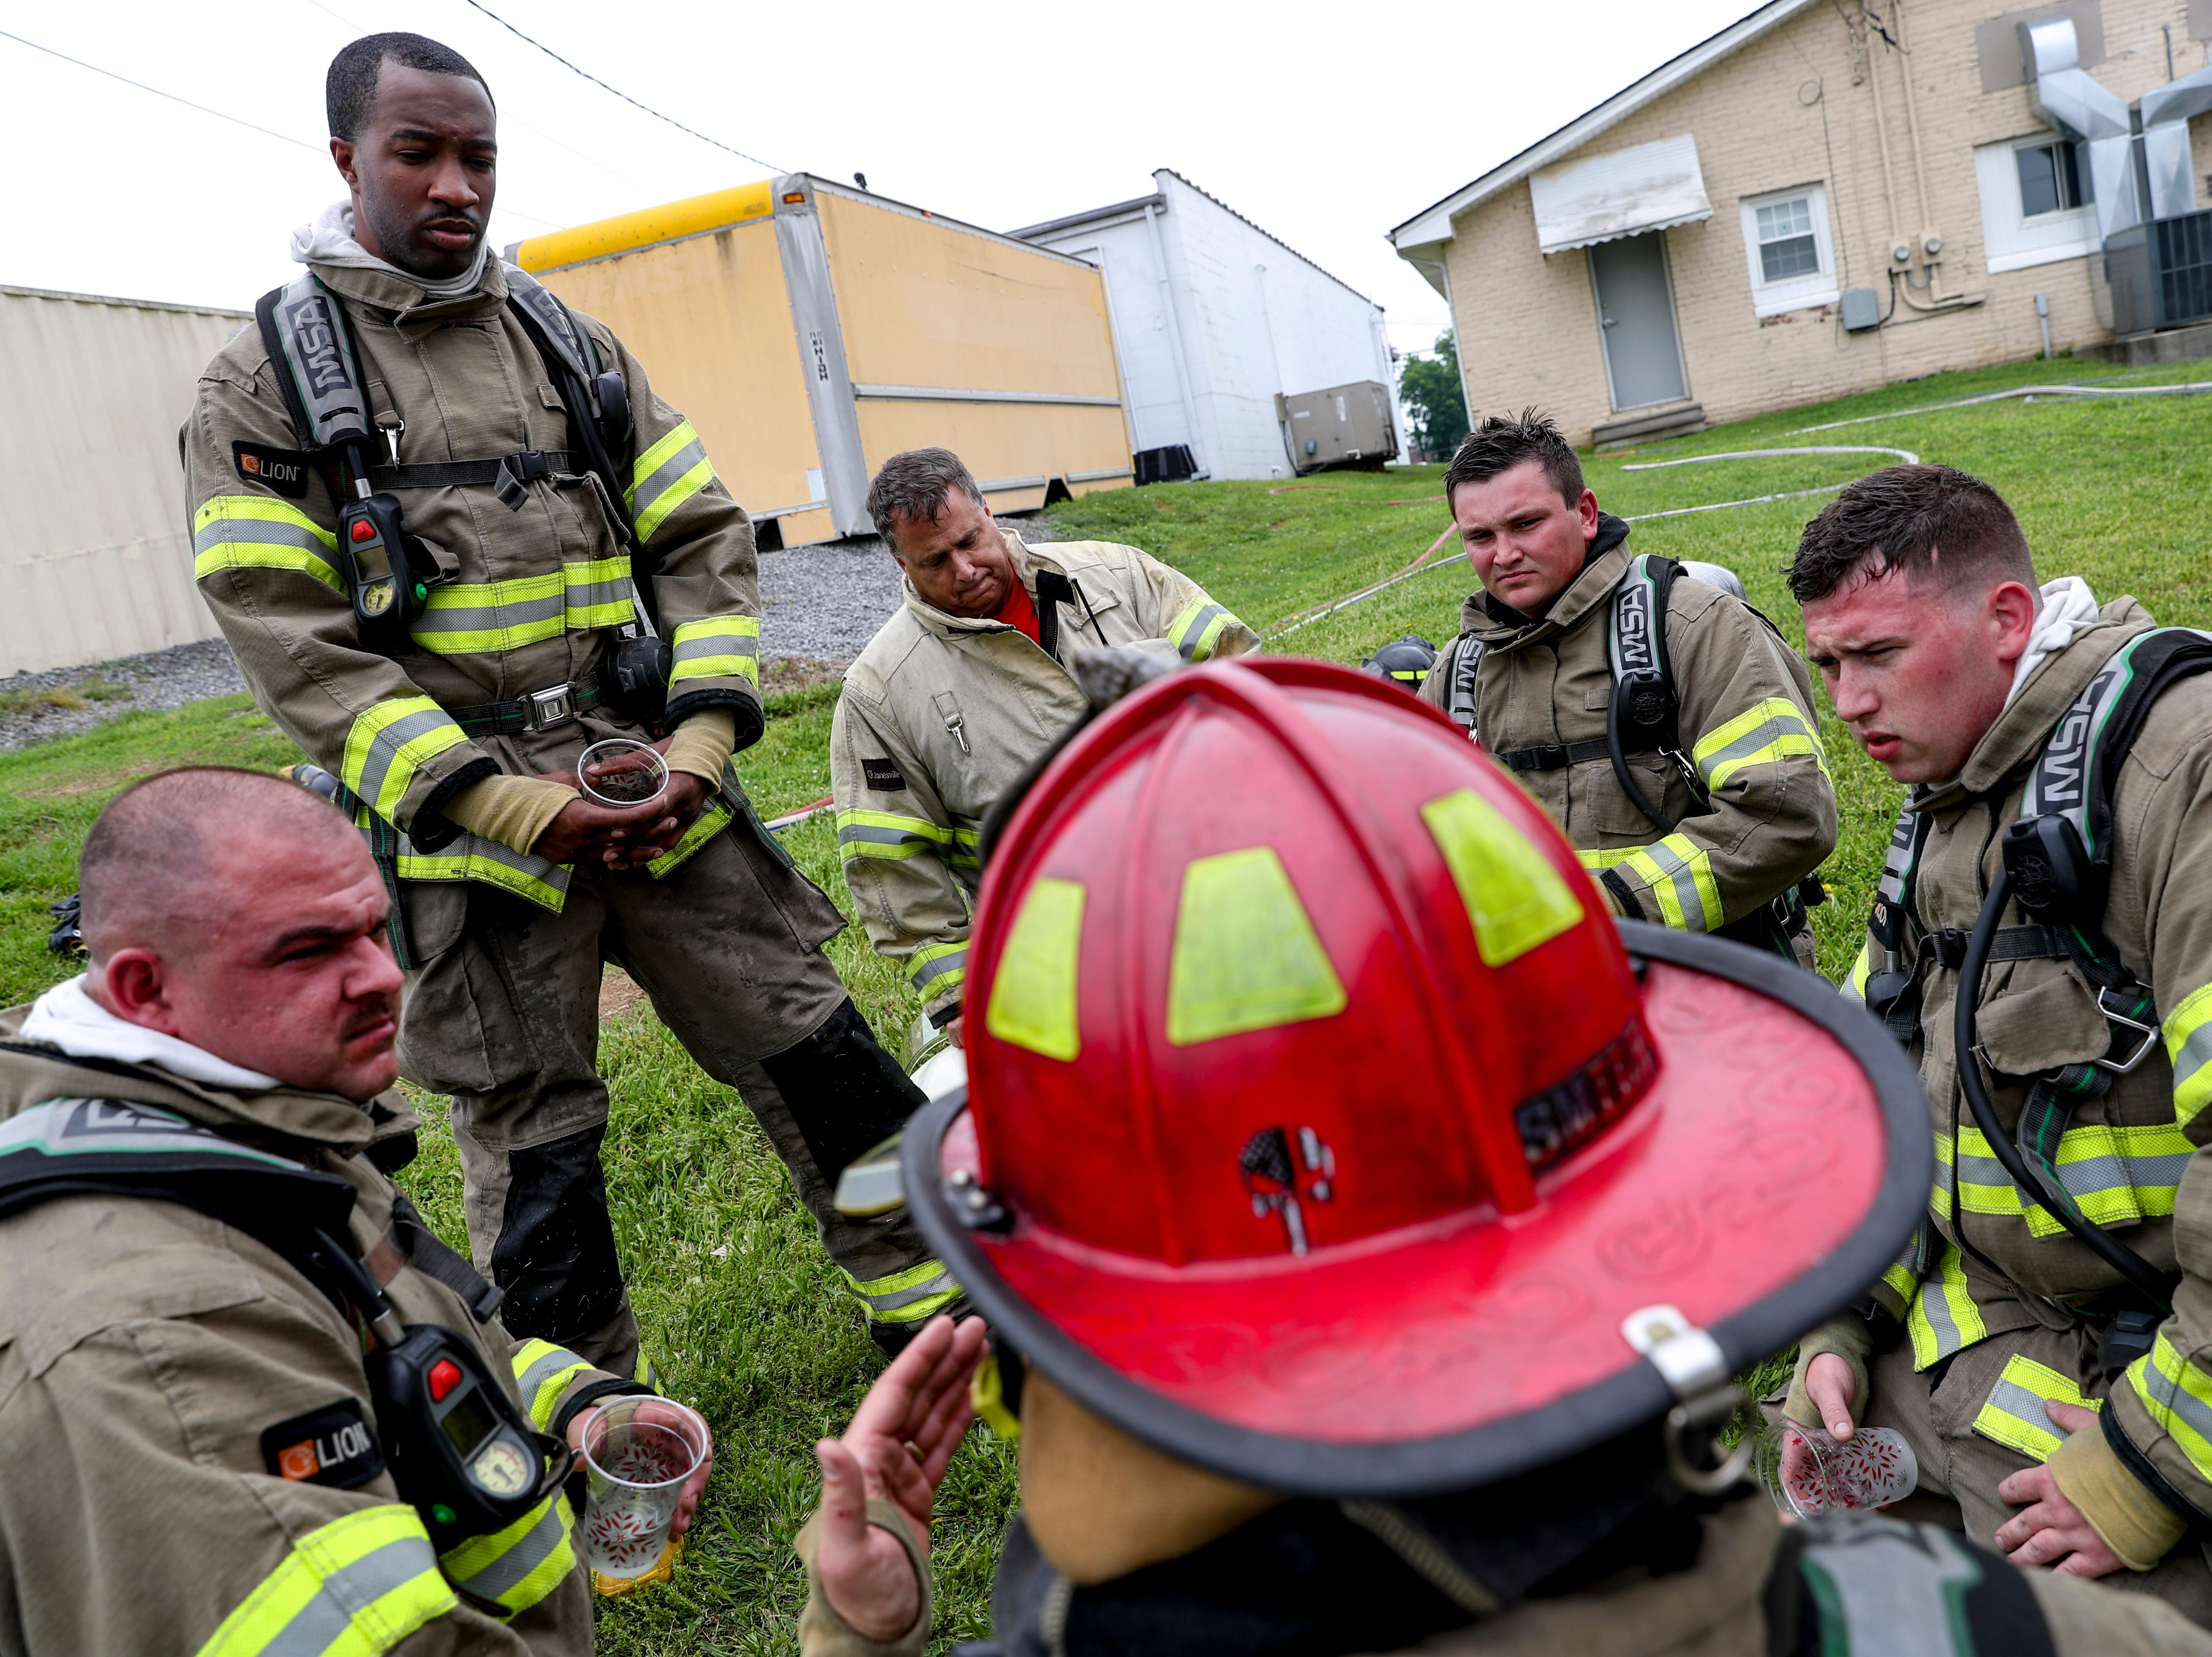 Capt. Butch McCurdy debriefs recruits after an hour working the live fire drill at Clarksville Fire Rescue on Friday, May 10, 2019.